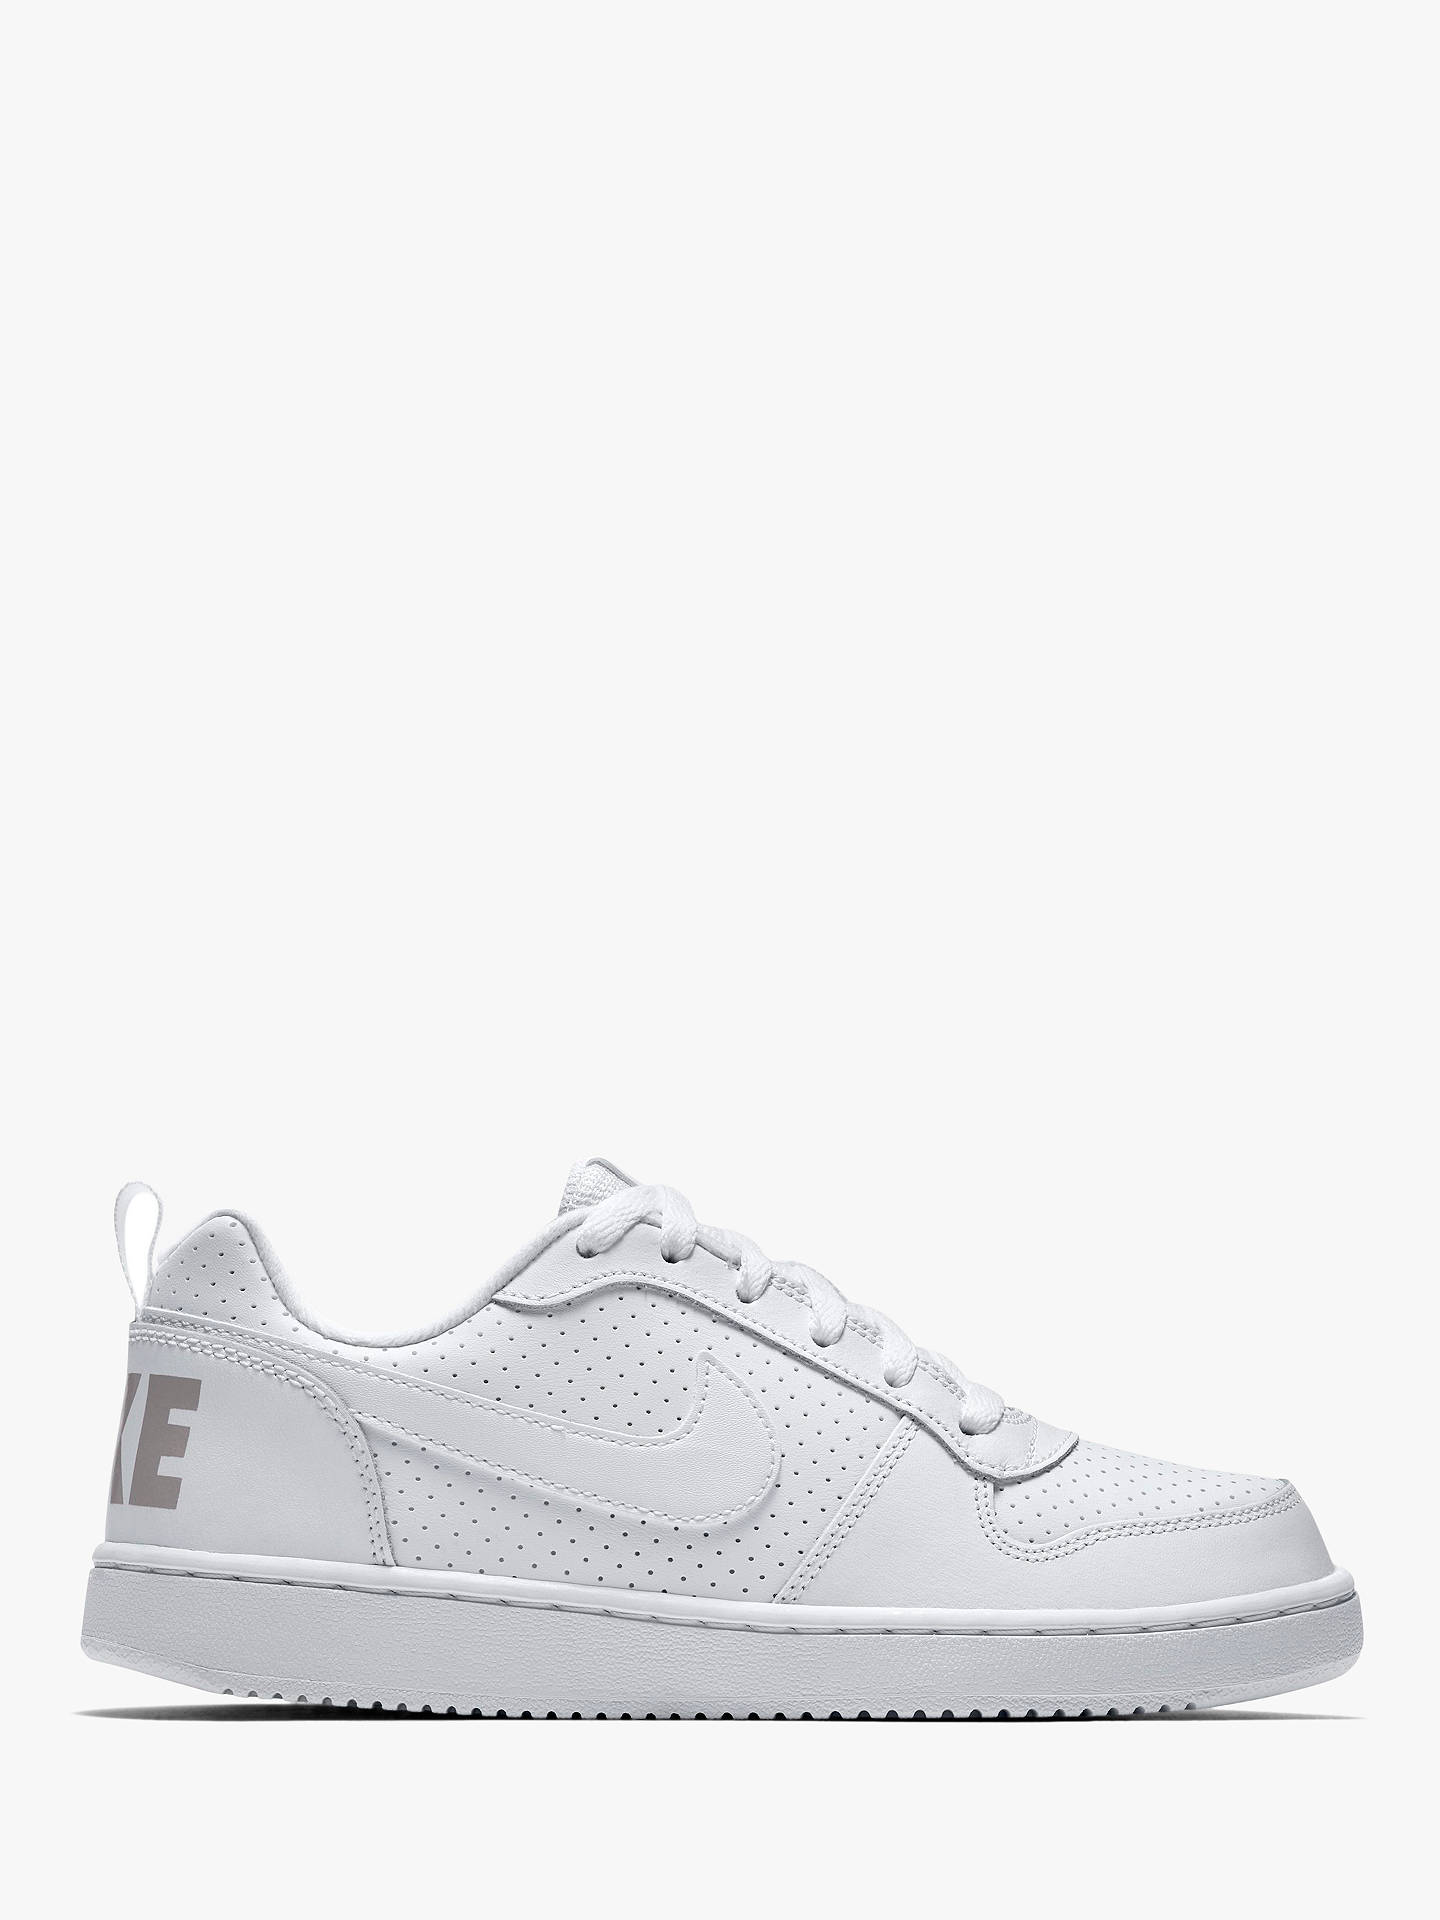 the latest 5bed1 4ad2a Buy Nike Children s Court Borough Low Trainers, White, 4 Online at  johnlewis. ...